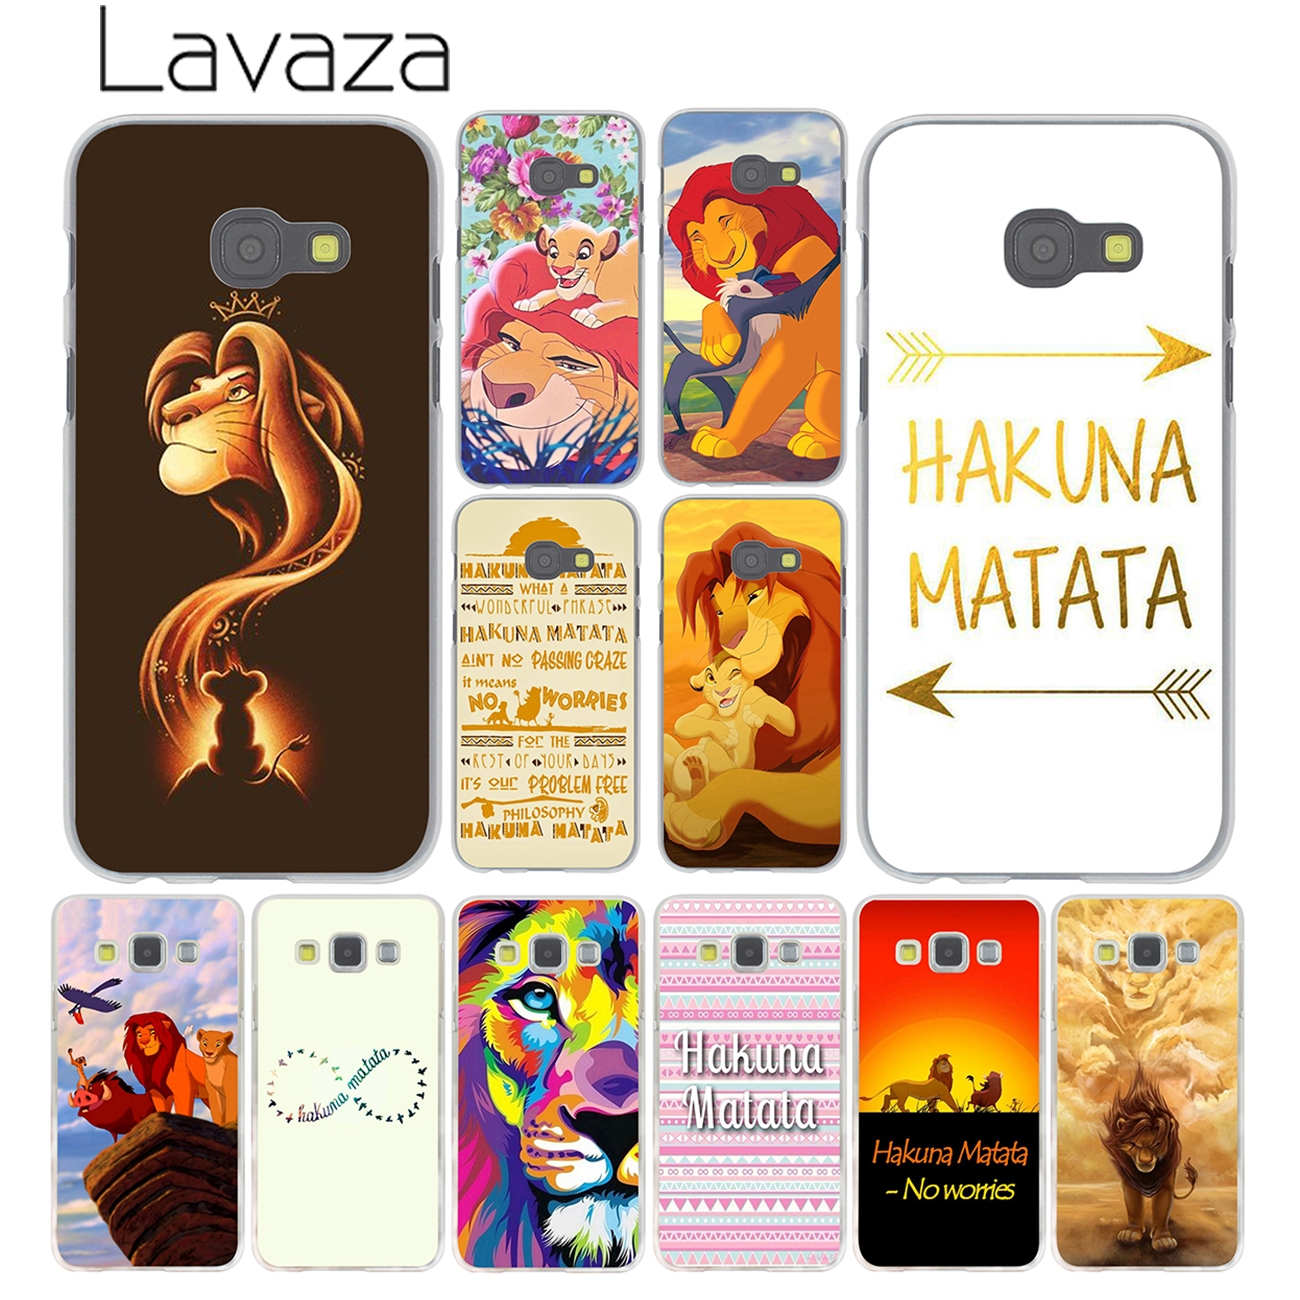 Lavaza The <font><b>Hakuna</b></font> <font><b>Matata</b></font> <font><b>Lion</b></font> <font><b>King</b></font> Phone Case for Samsung Galaxy Note 10 9 8 A9 A8 A7 A6 Plus 2018 A5 A3 2015 2016 2017 A2 Cover image